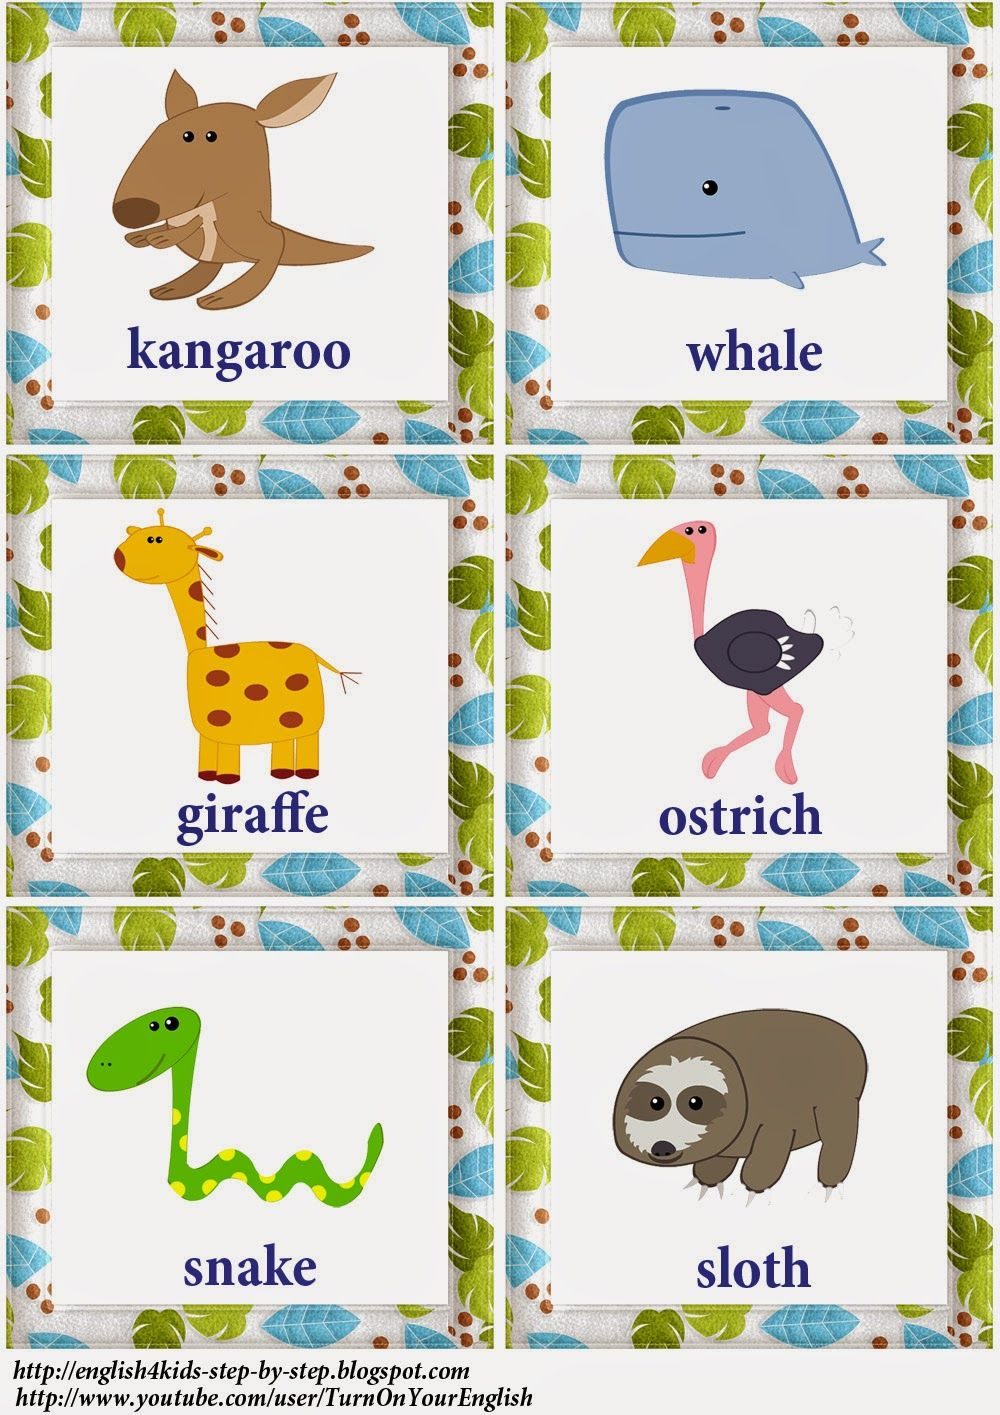 I Can Action Verbs Song For Kids Flashcards And Worksheets Verb Song Action Verbs Kids Songs [ 1415 x 1000 Pixel ]